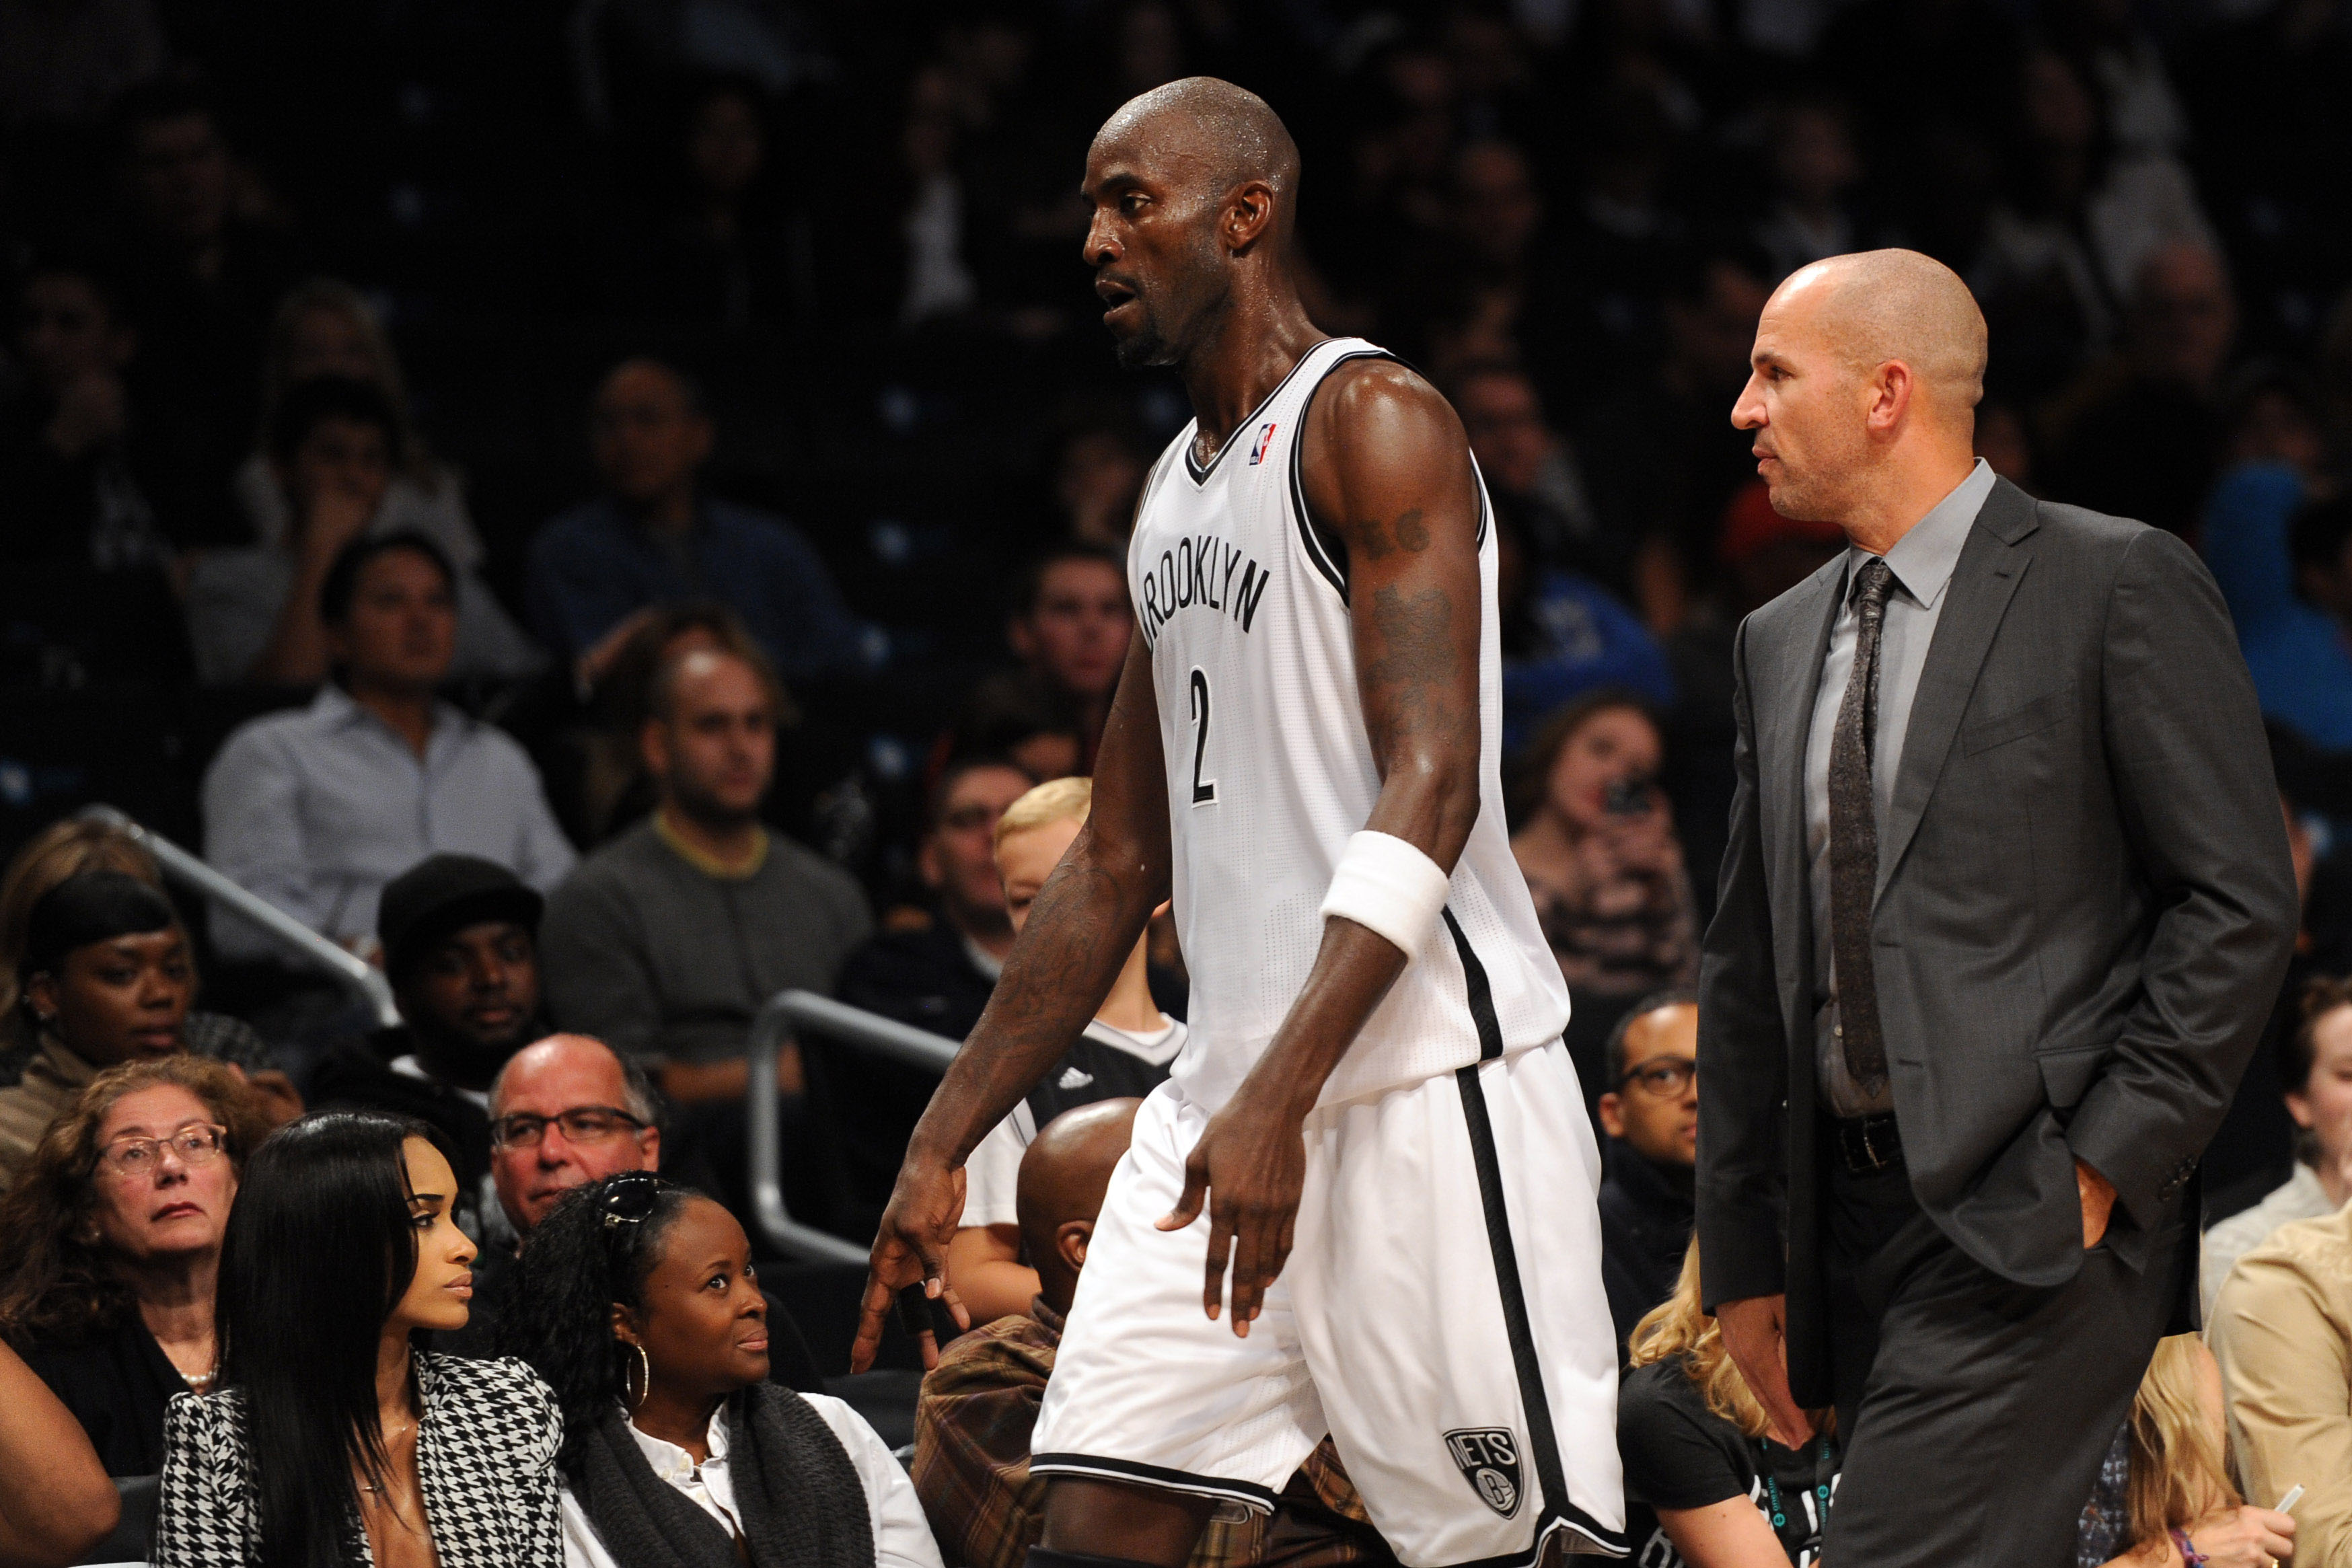 Garnett also had strong words for James. (USA Today)